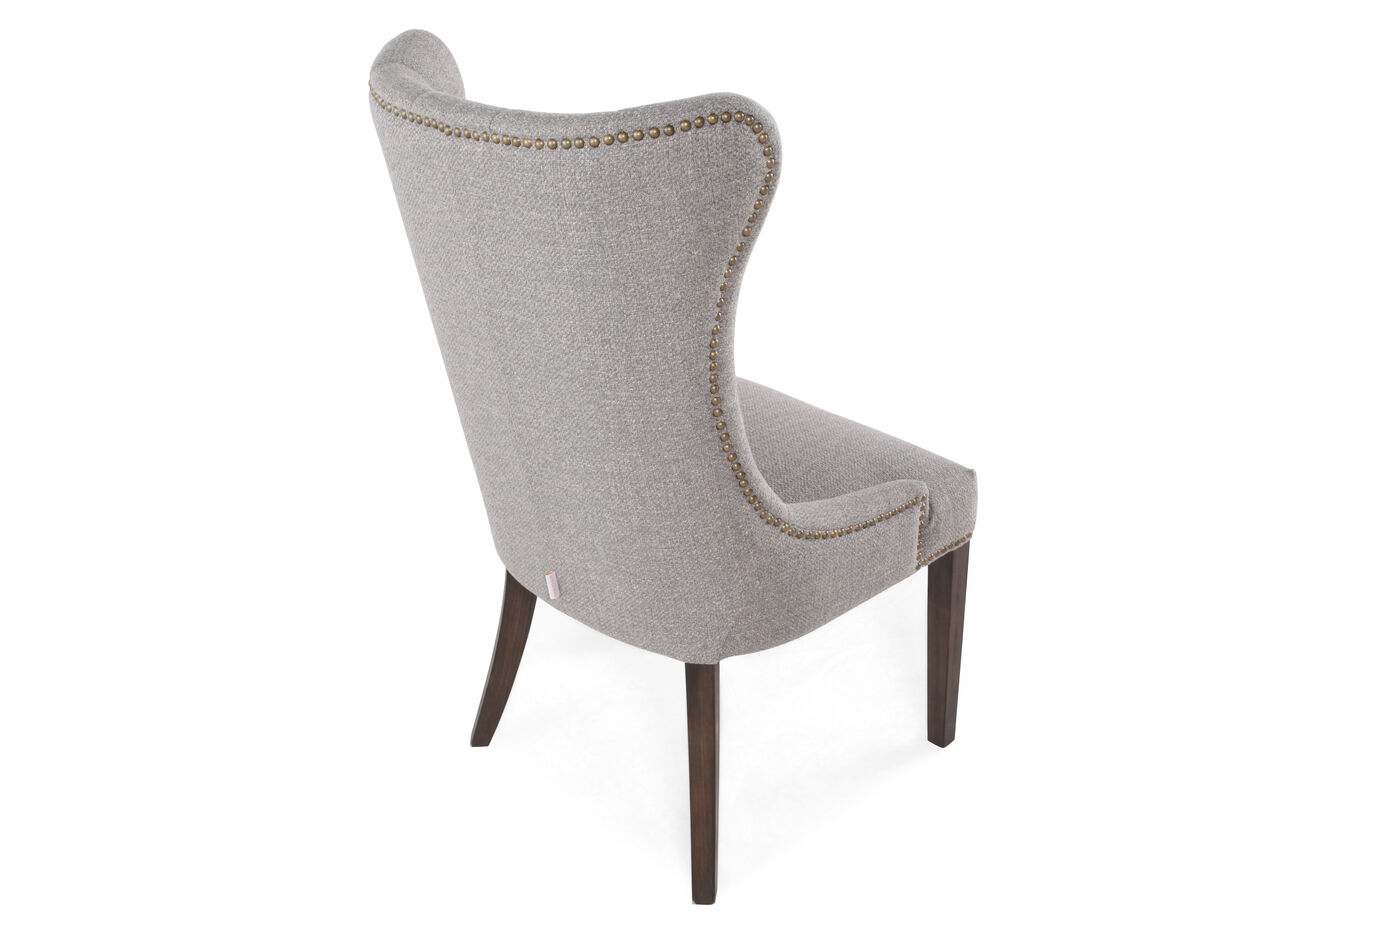 tufted back dining chair. Button-Tufted Back 23\u0026quot; Dining Chair\u0026nbsp Tufted Chair D